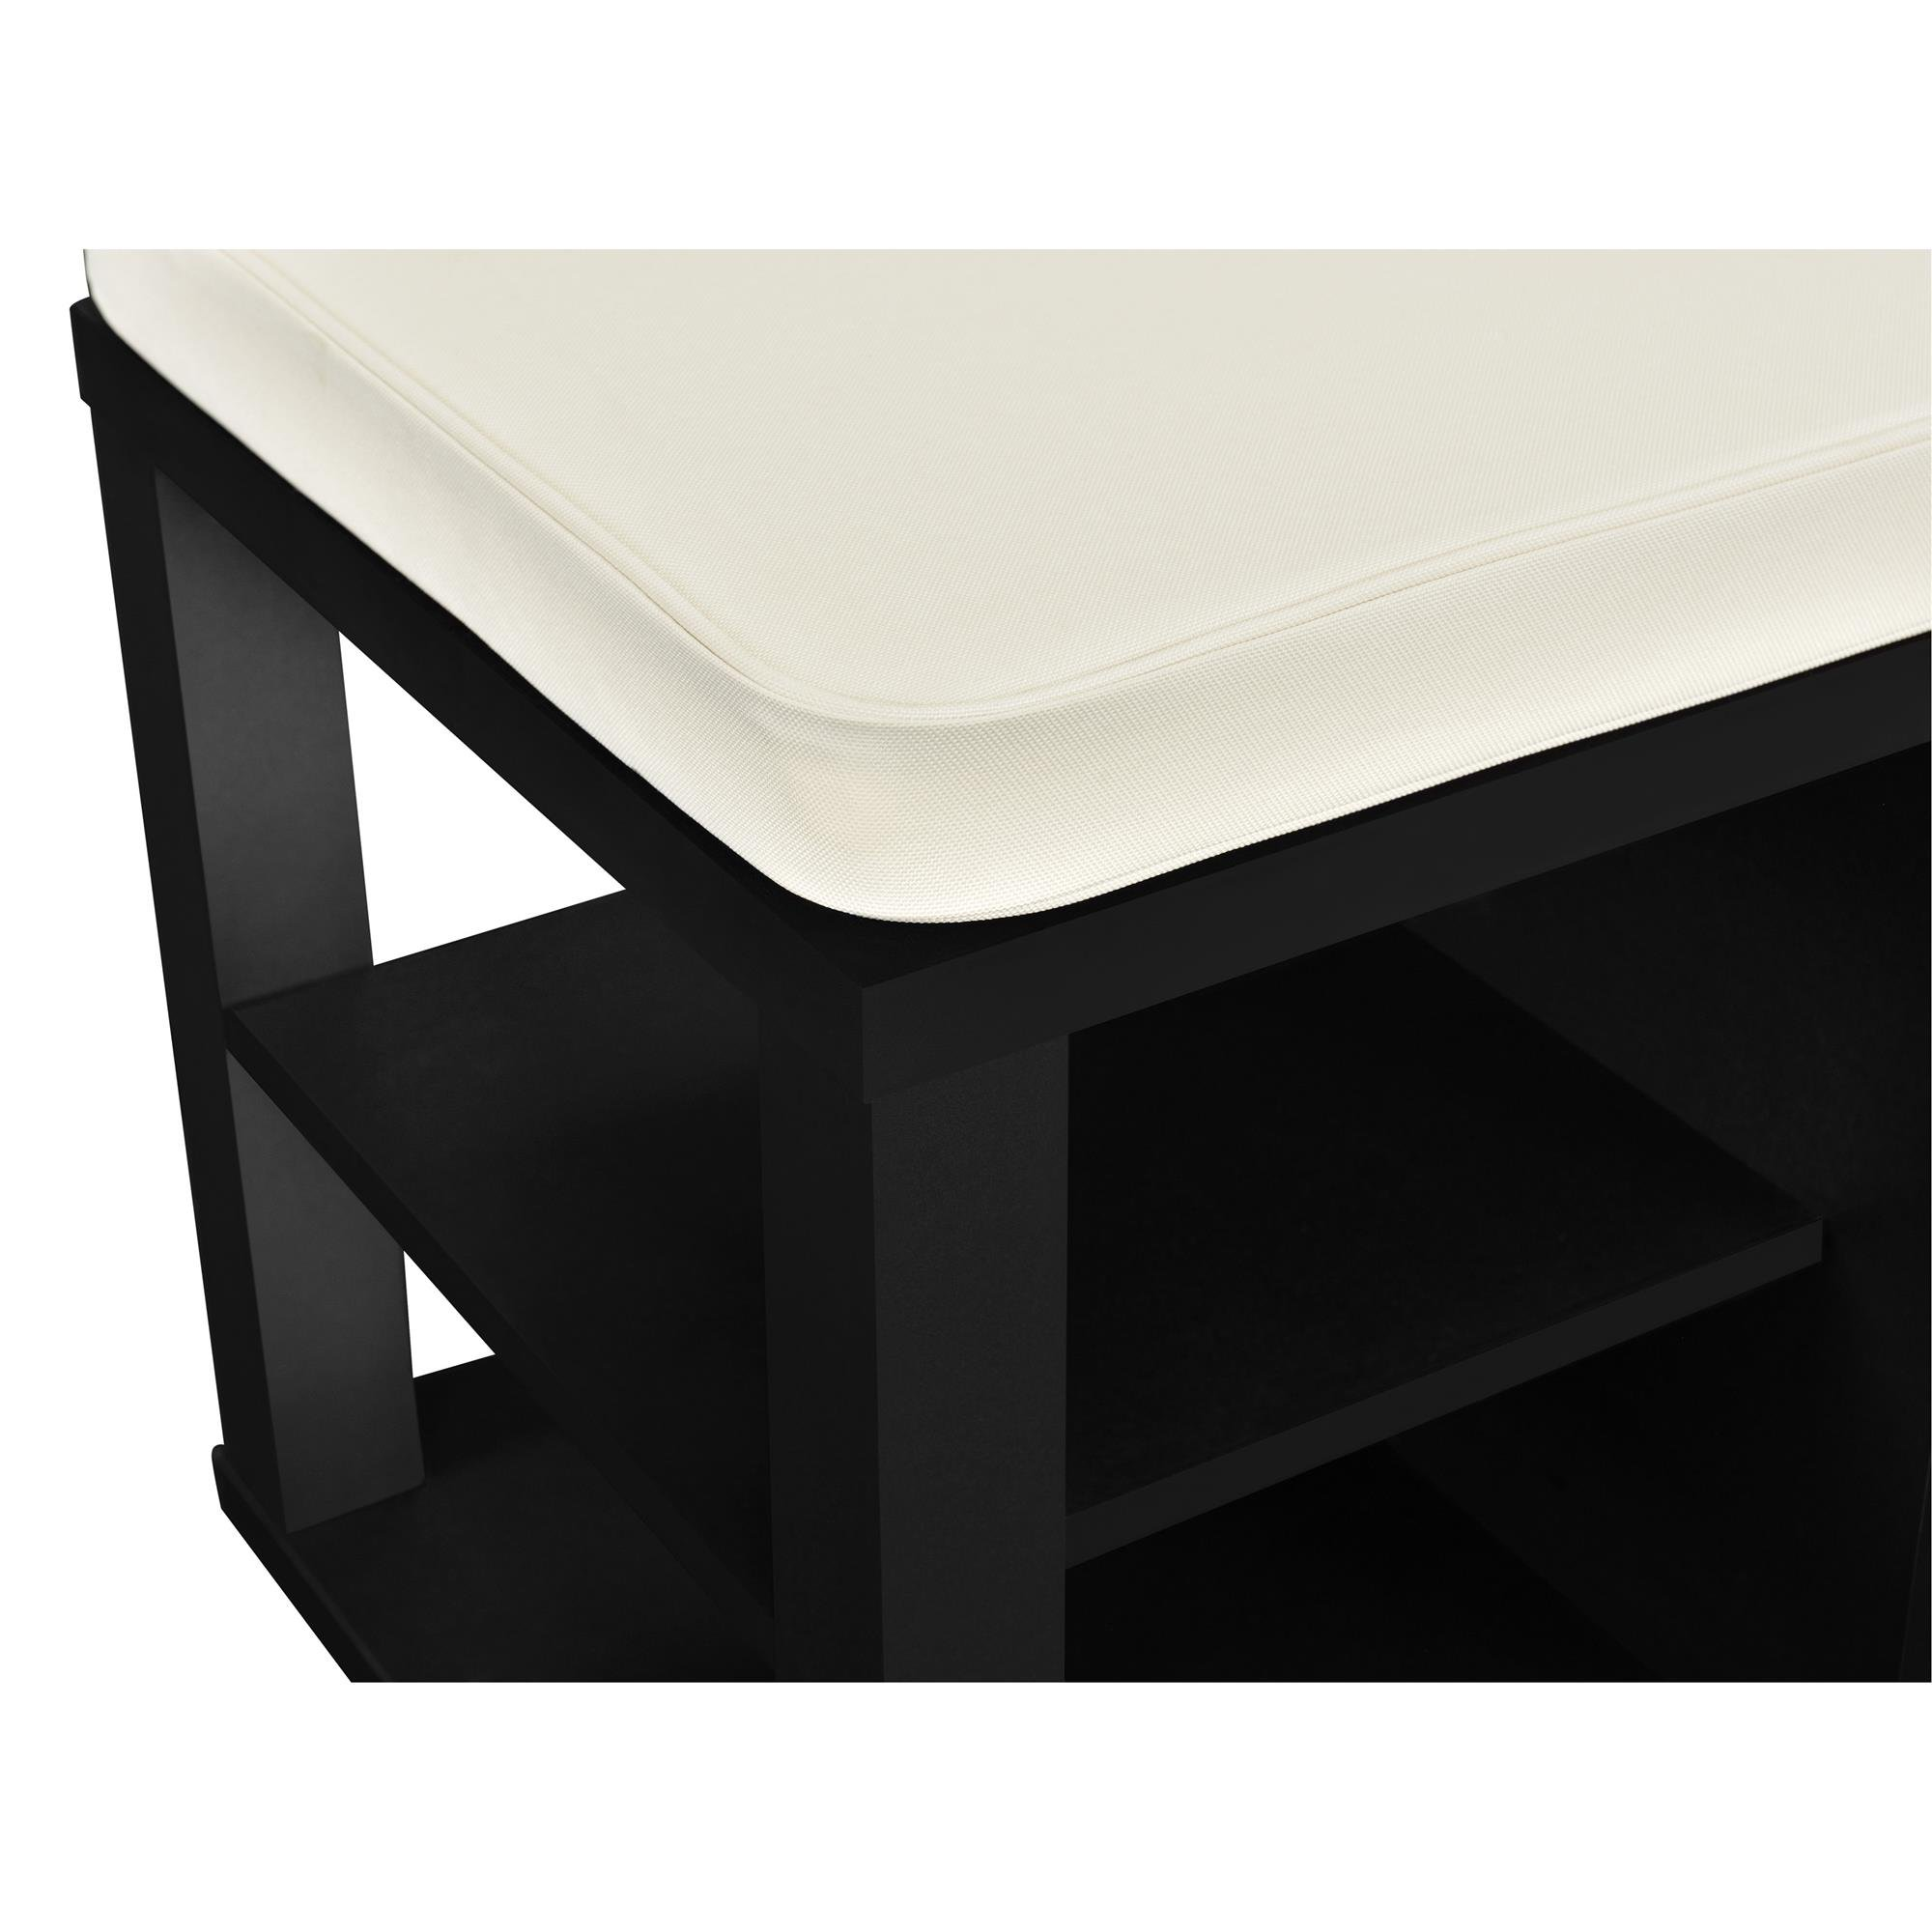 Ameriwood Home Parsons Storage Bench, Black by Ameriwood Home (Image #3)